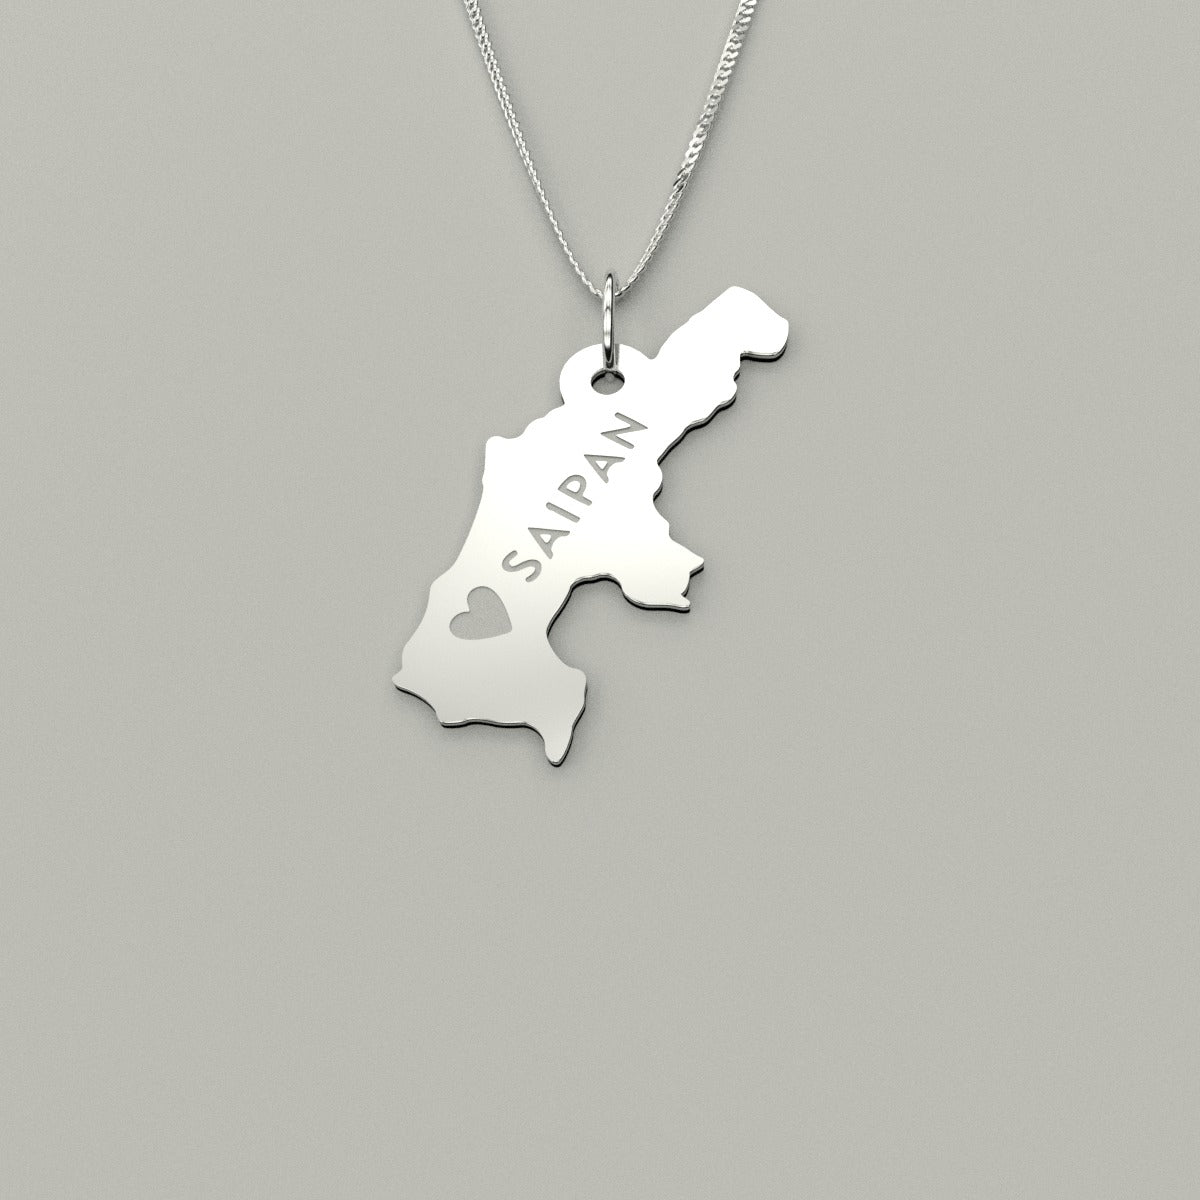 Love Saipan CNMI Sterling Silver Necklace